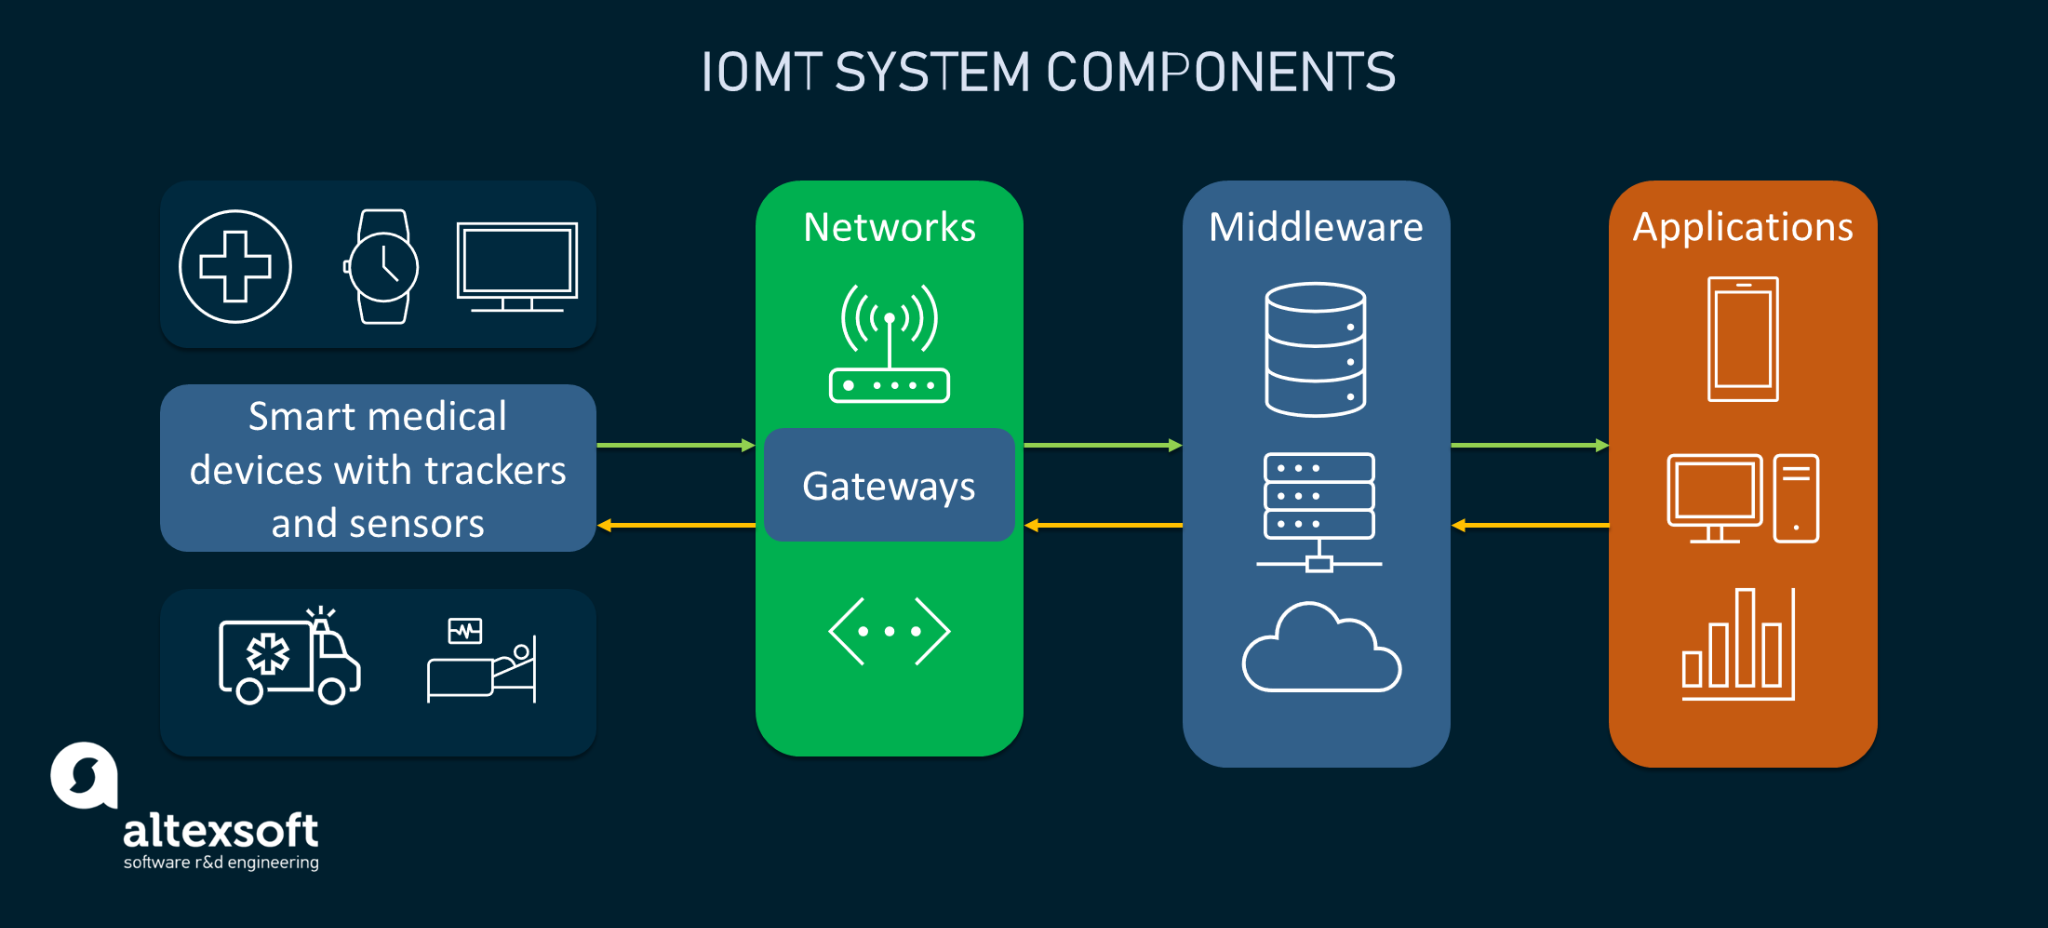 The building blocks of IoMT systems